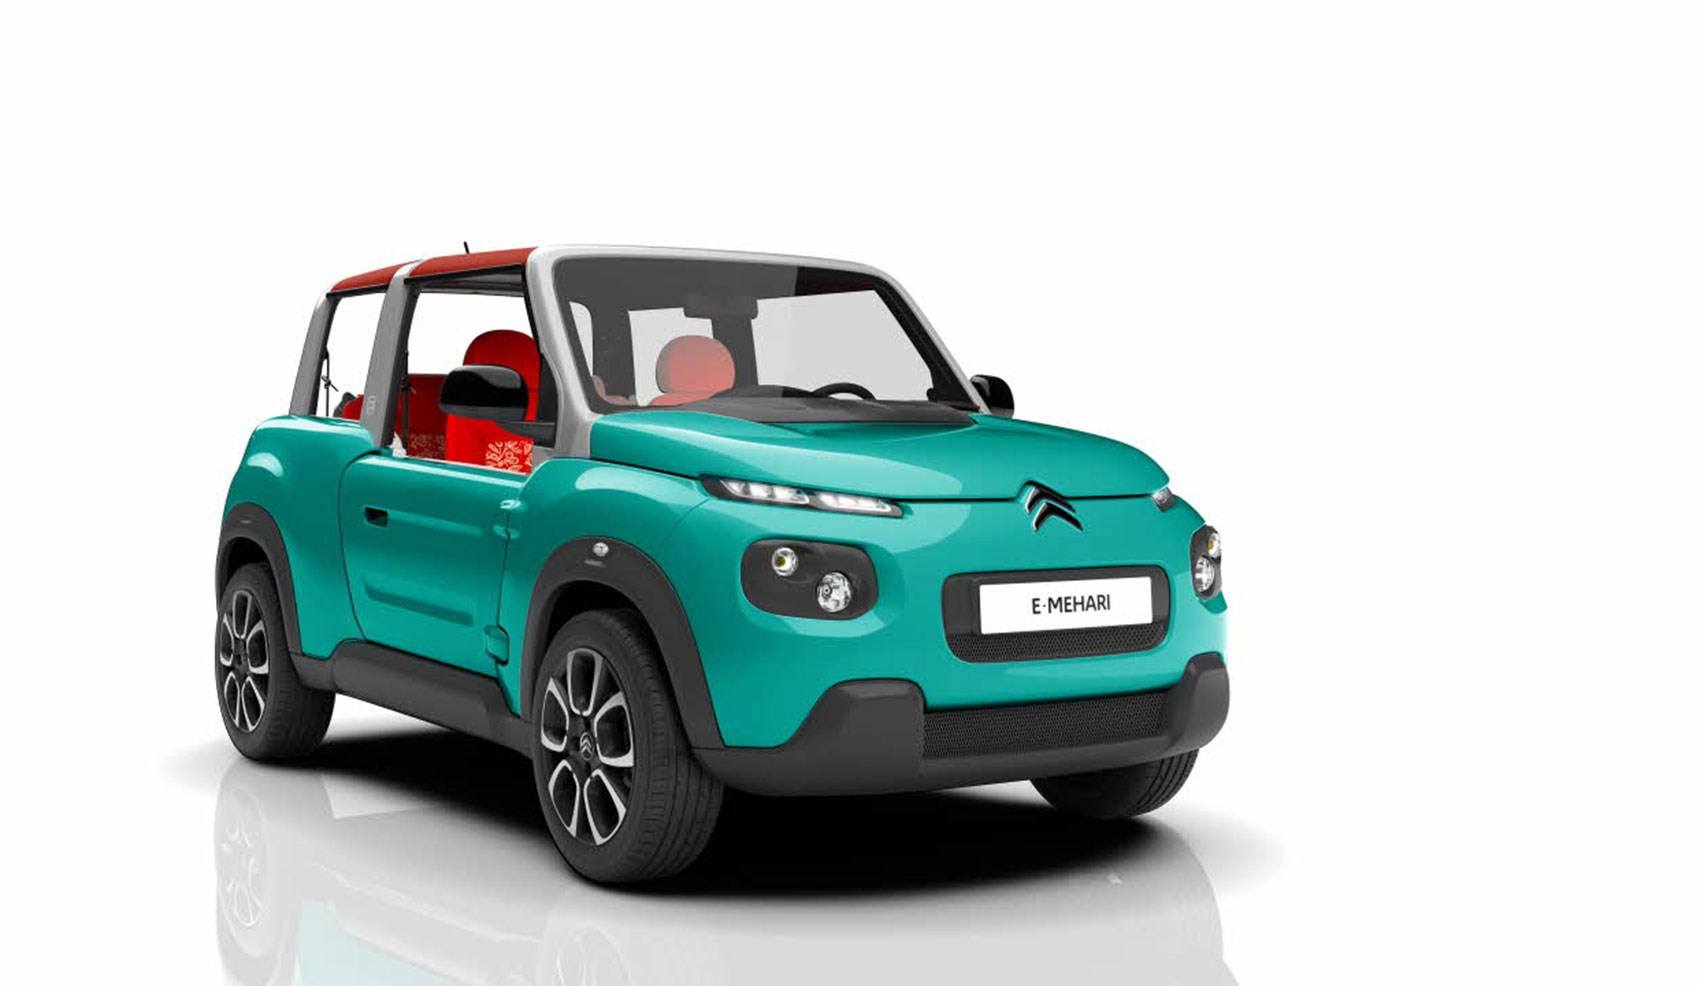 Morgan Cars For Sale >> Citroen E-Mehari: the electric beach buggy you can buy in 2016 | CAR Magazine